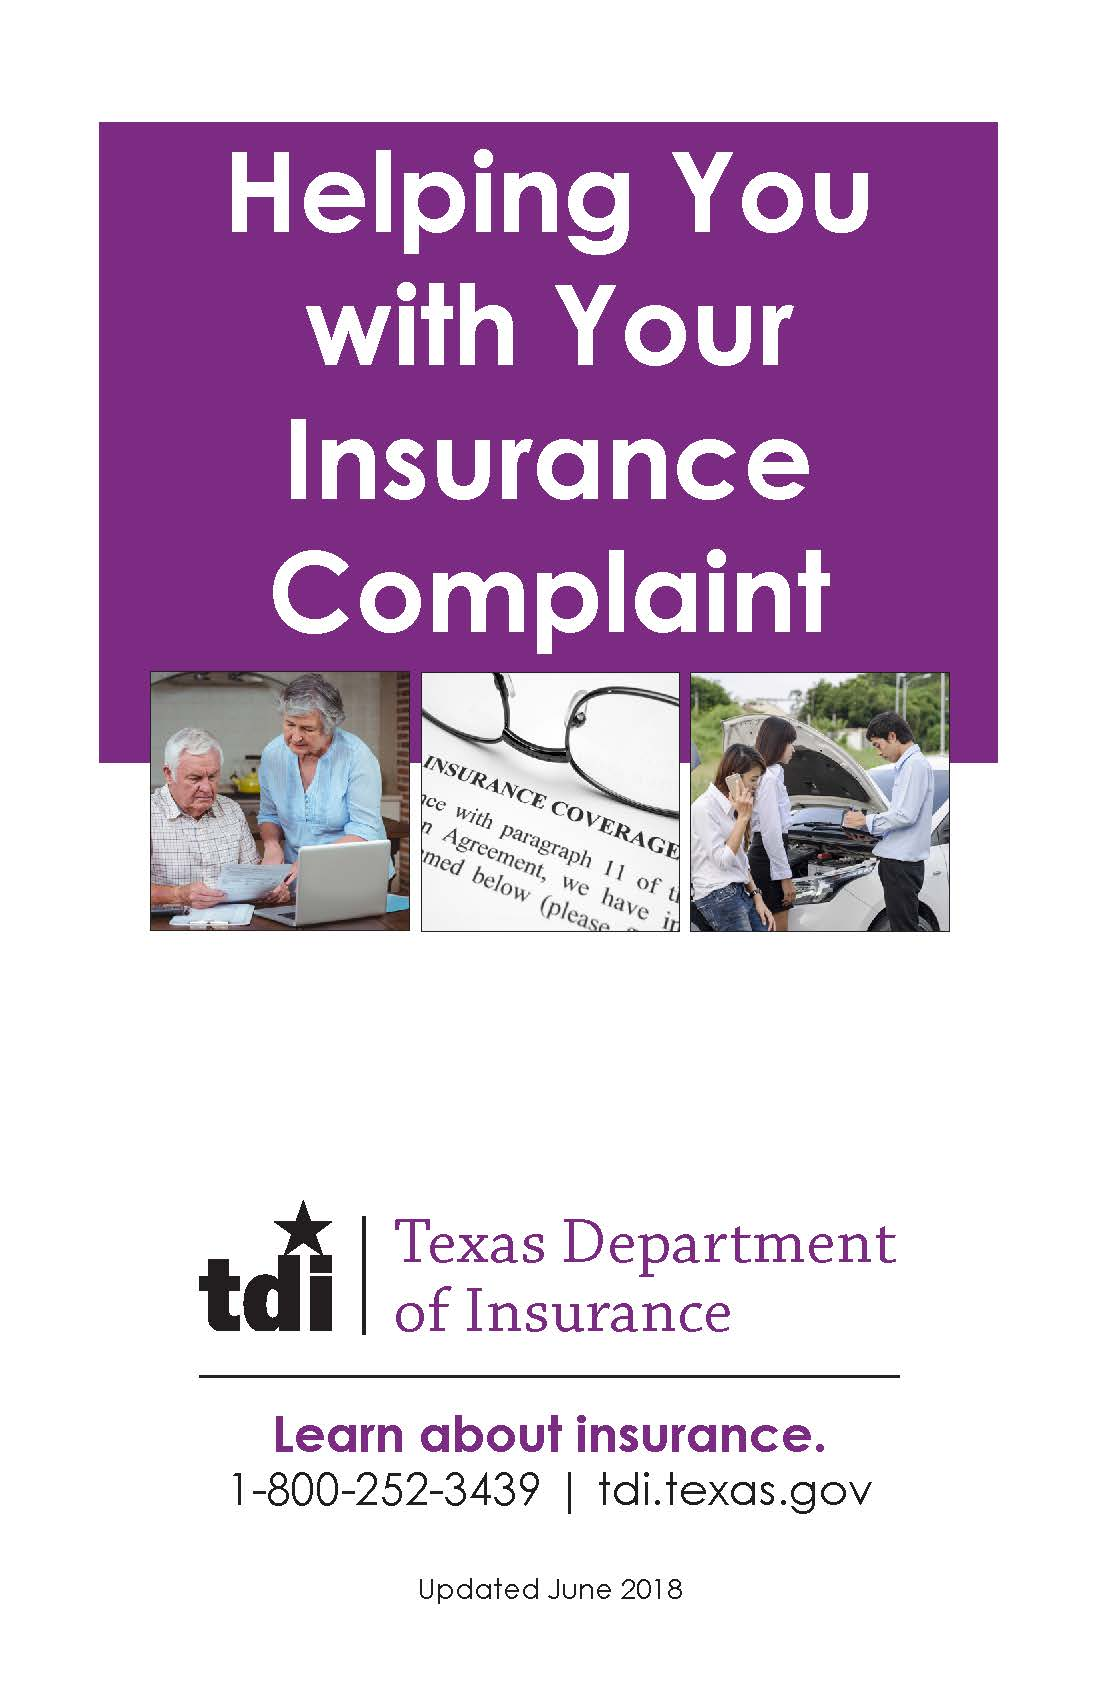 Helping You With Your Insurance Complaint 2018.jpg